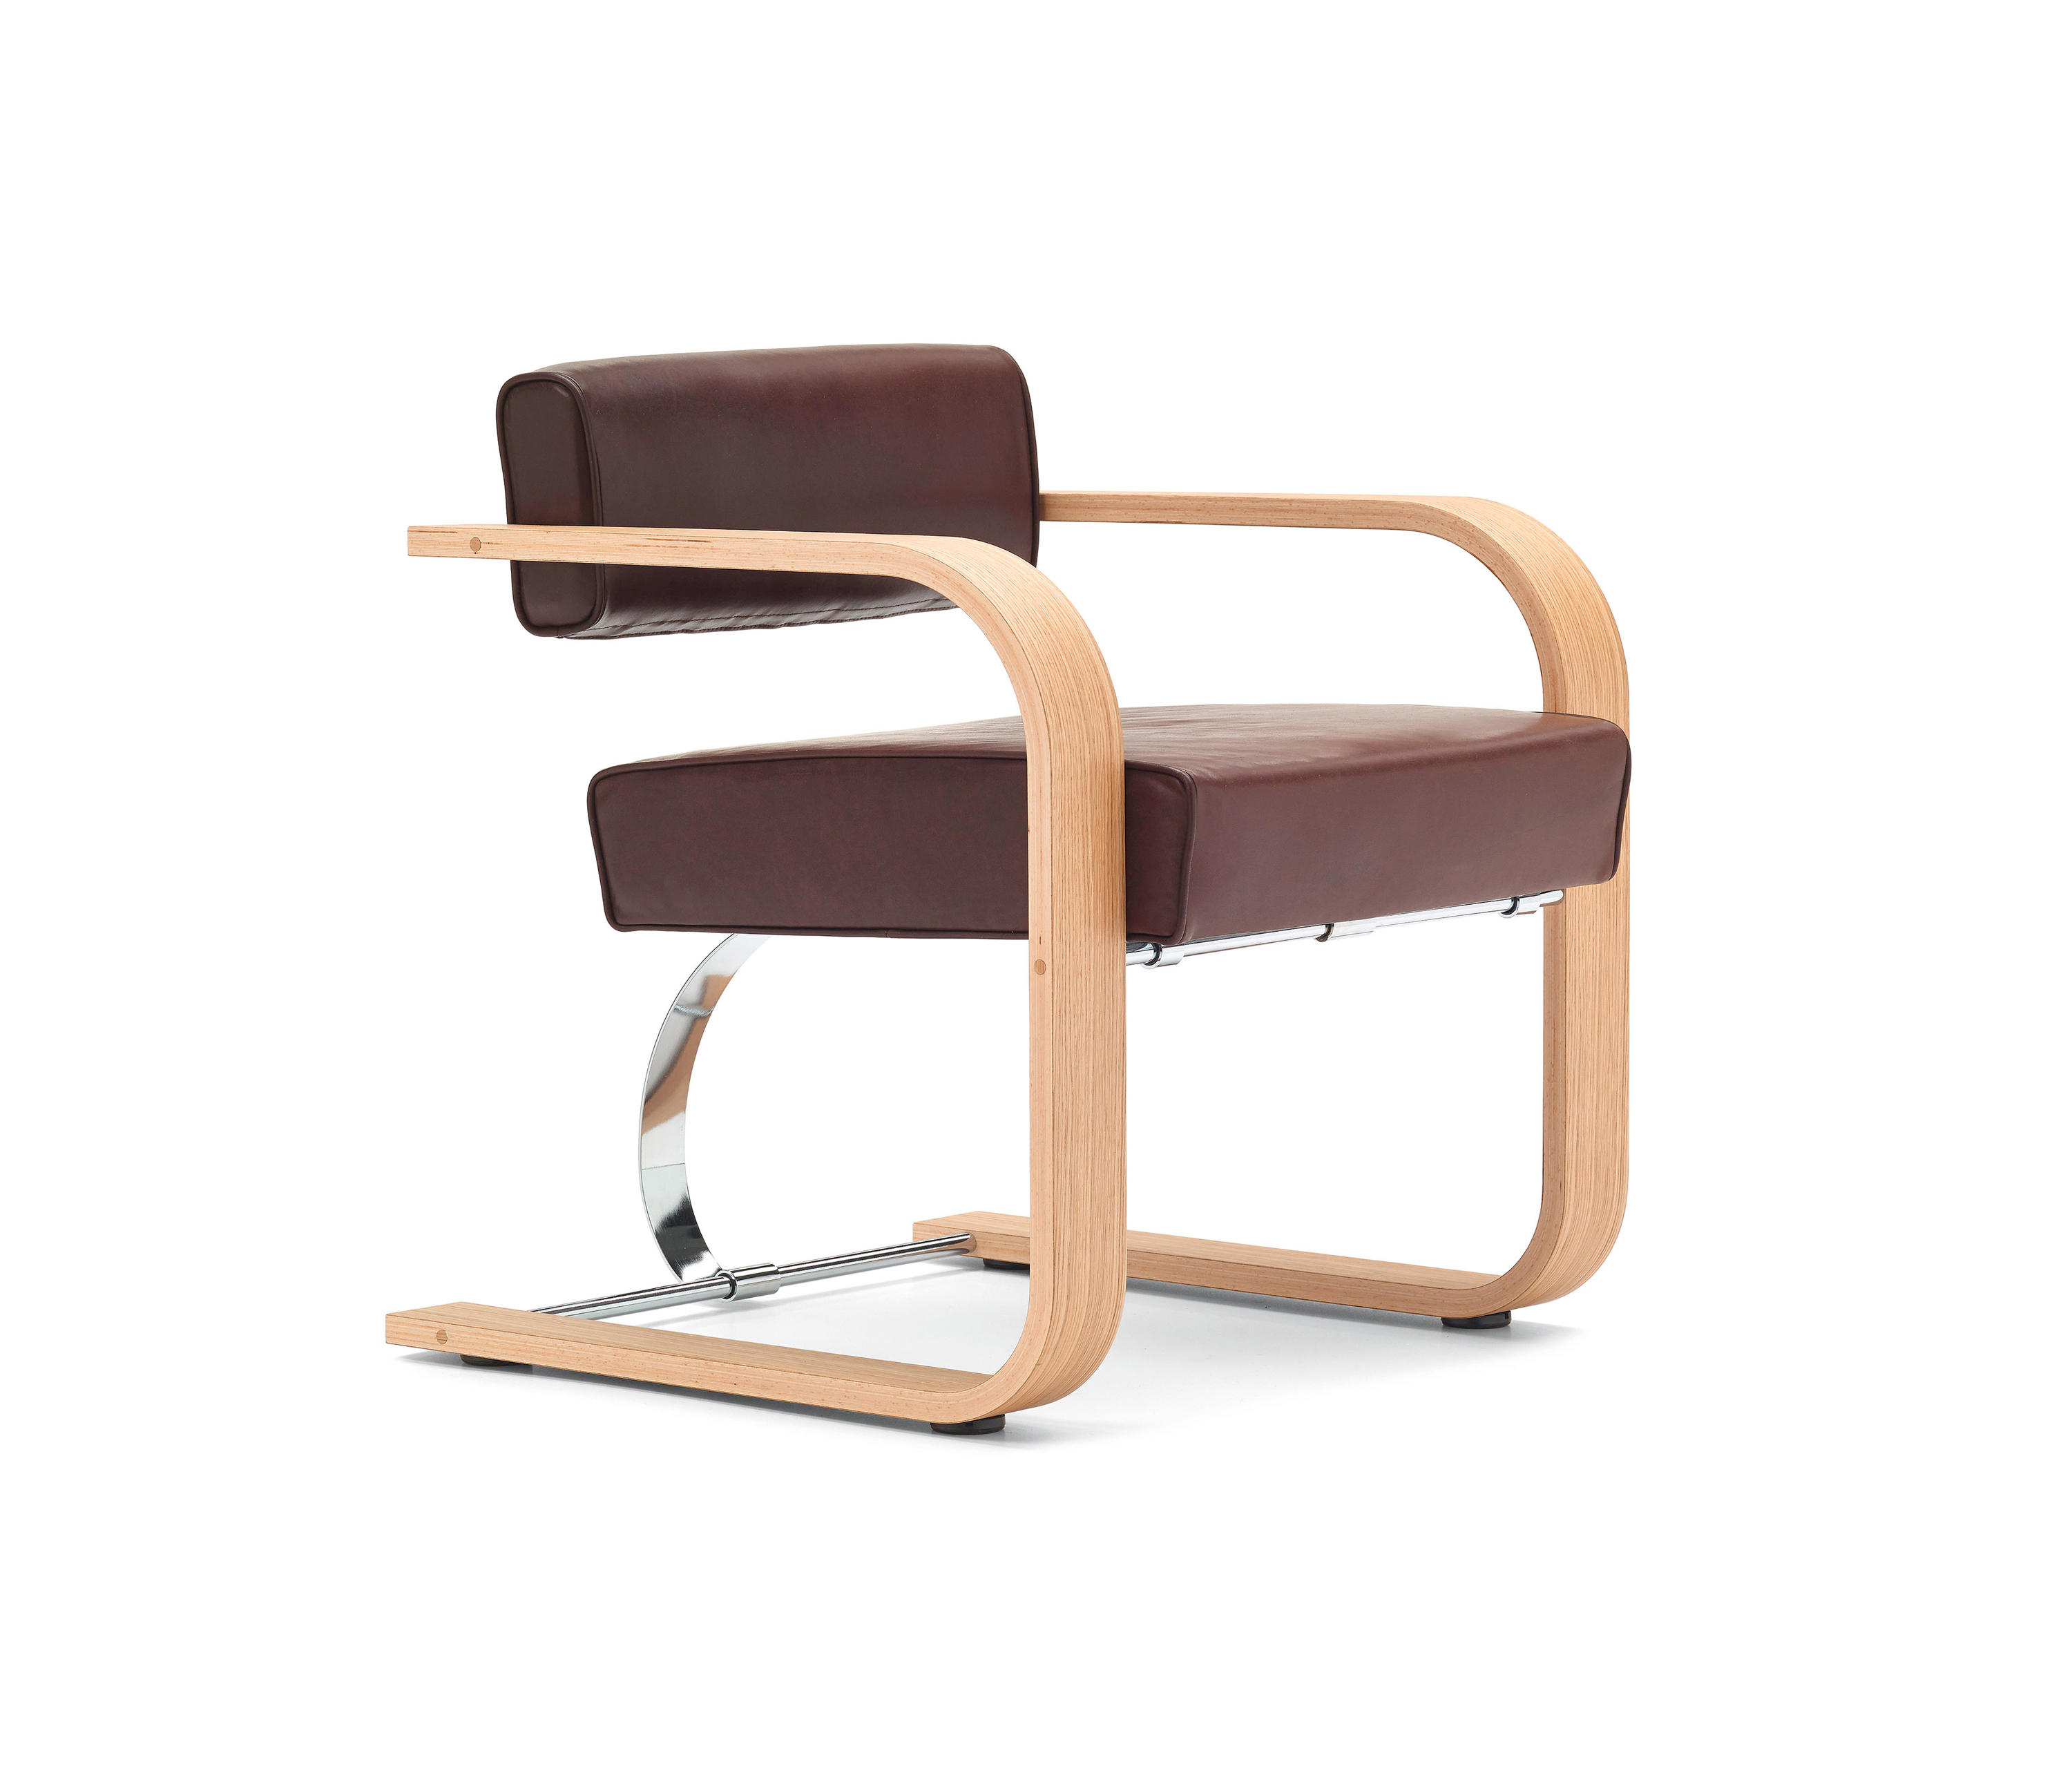 Cantilever chair wood besucherst hle von vs architonic for Chair vs chairman